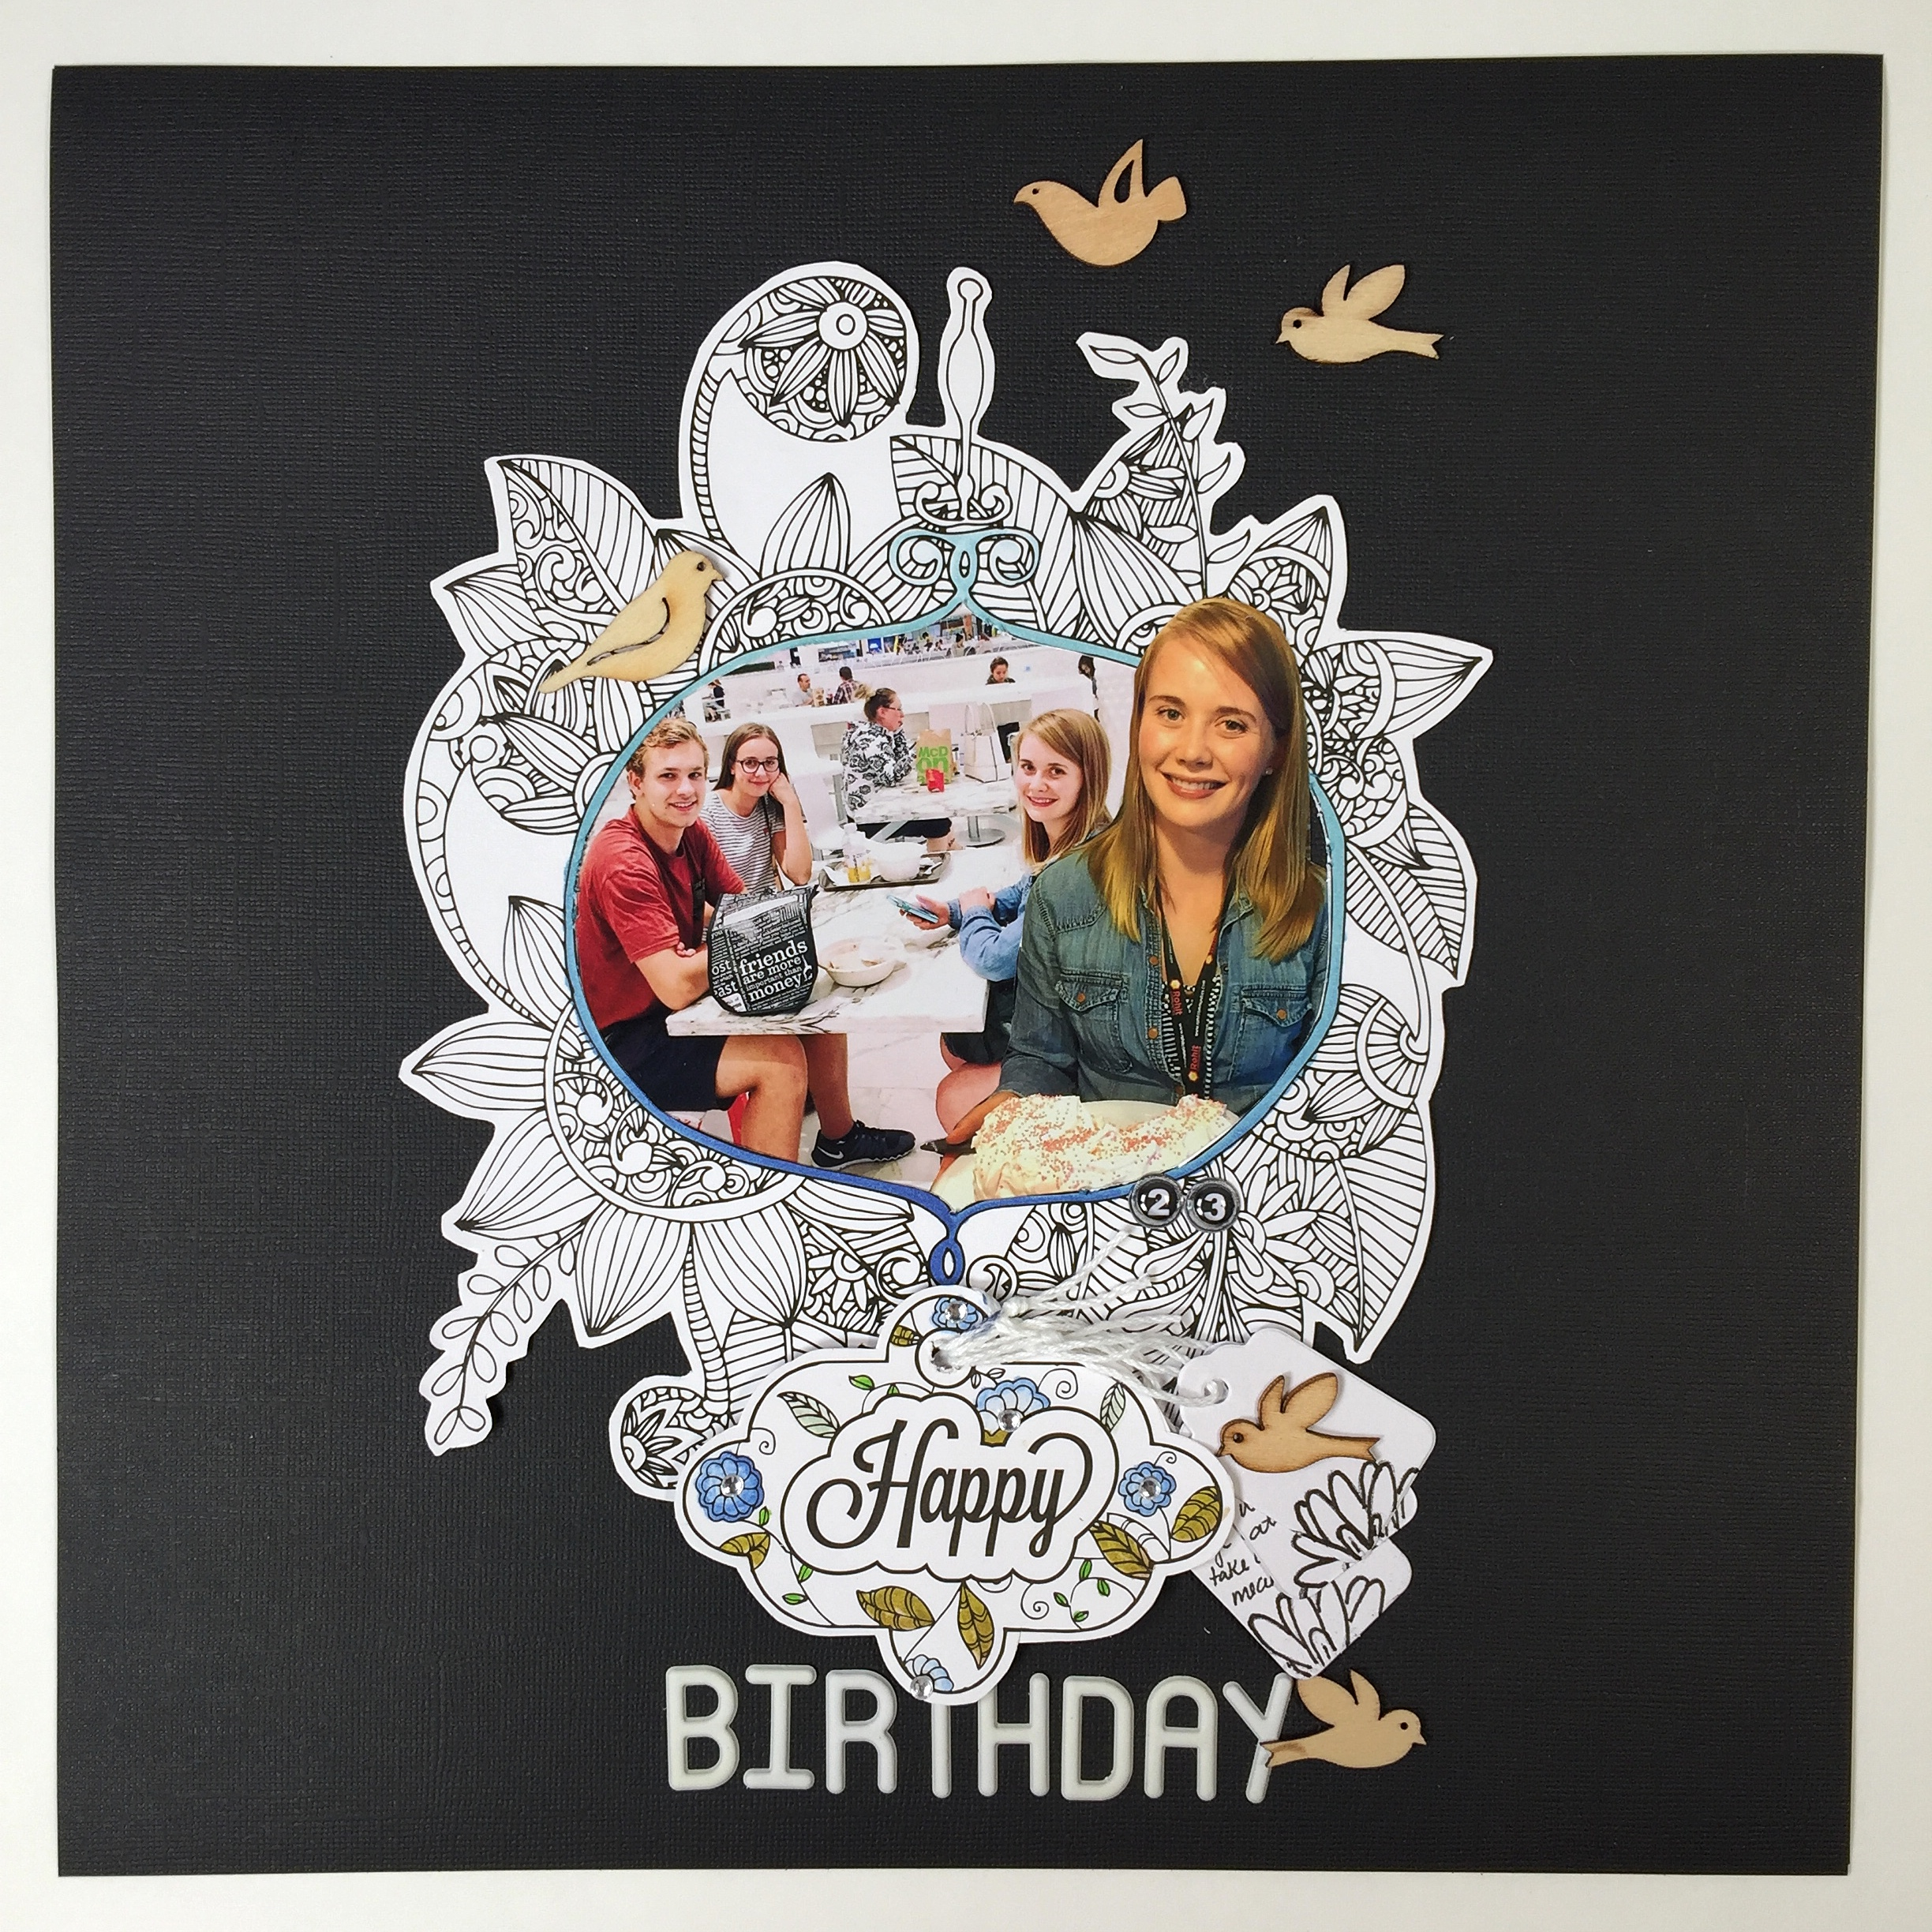 Happy Birthday Layout Designed by Kerry Engel featuring MultiCraft and Chameleon Pens | Creative Scrapbooker Magazine